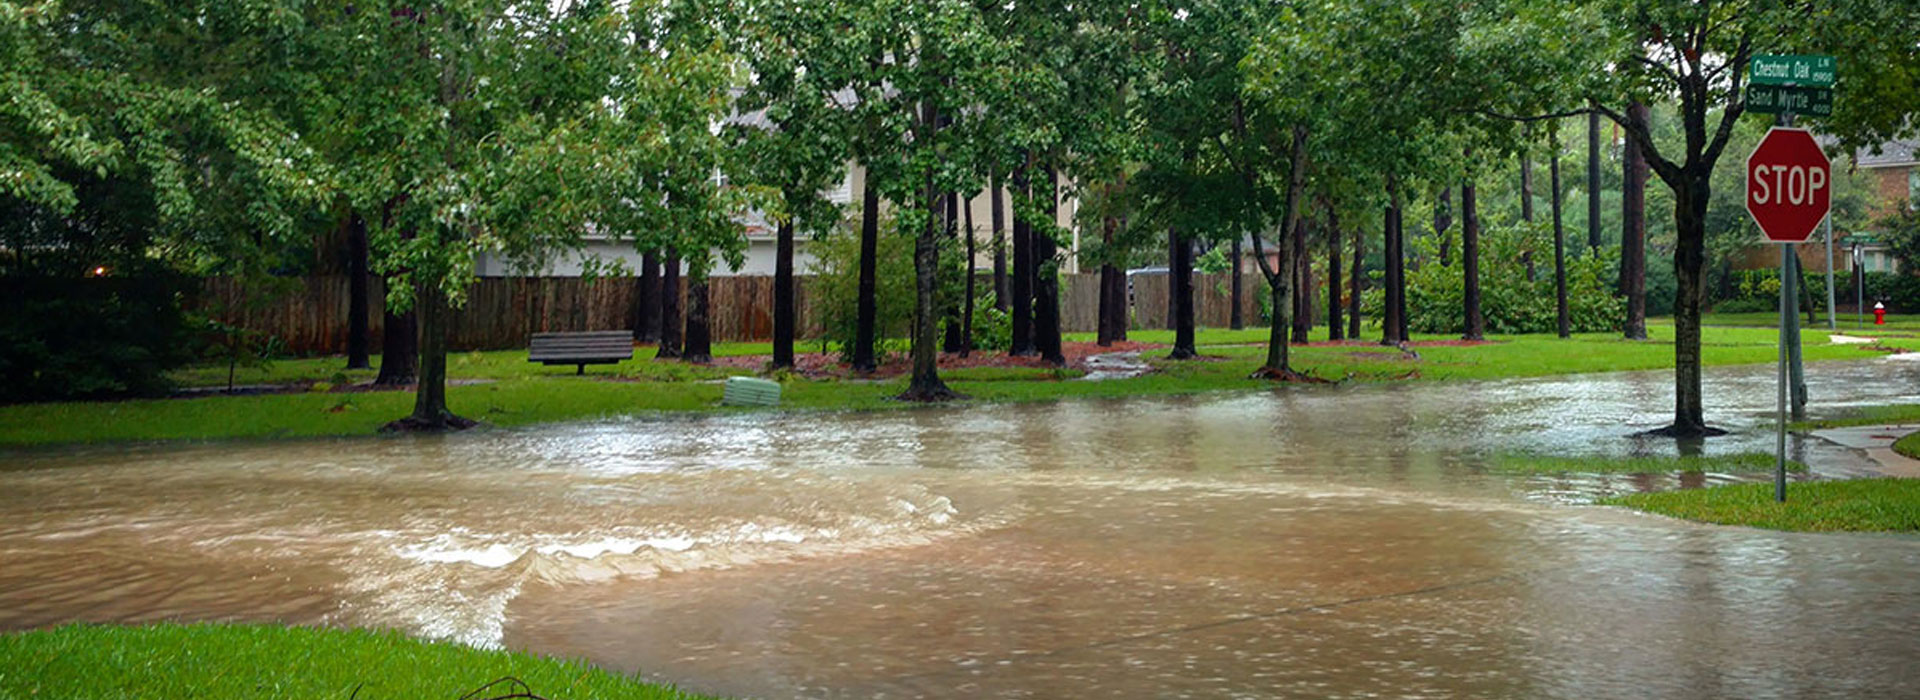 Hurricane Harvey and the REALTOR® Relief Foundation